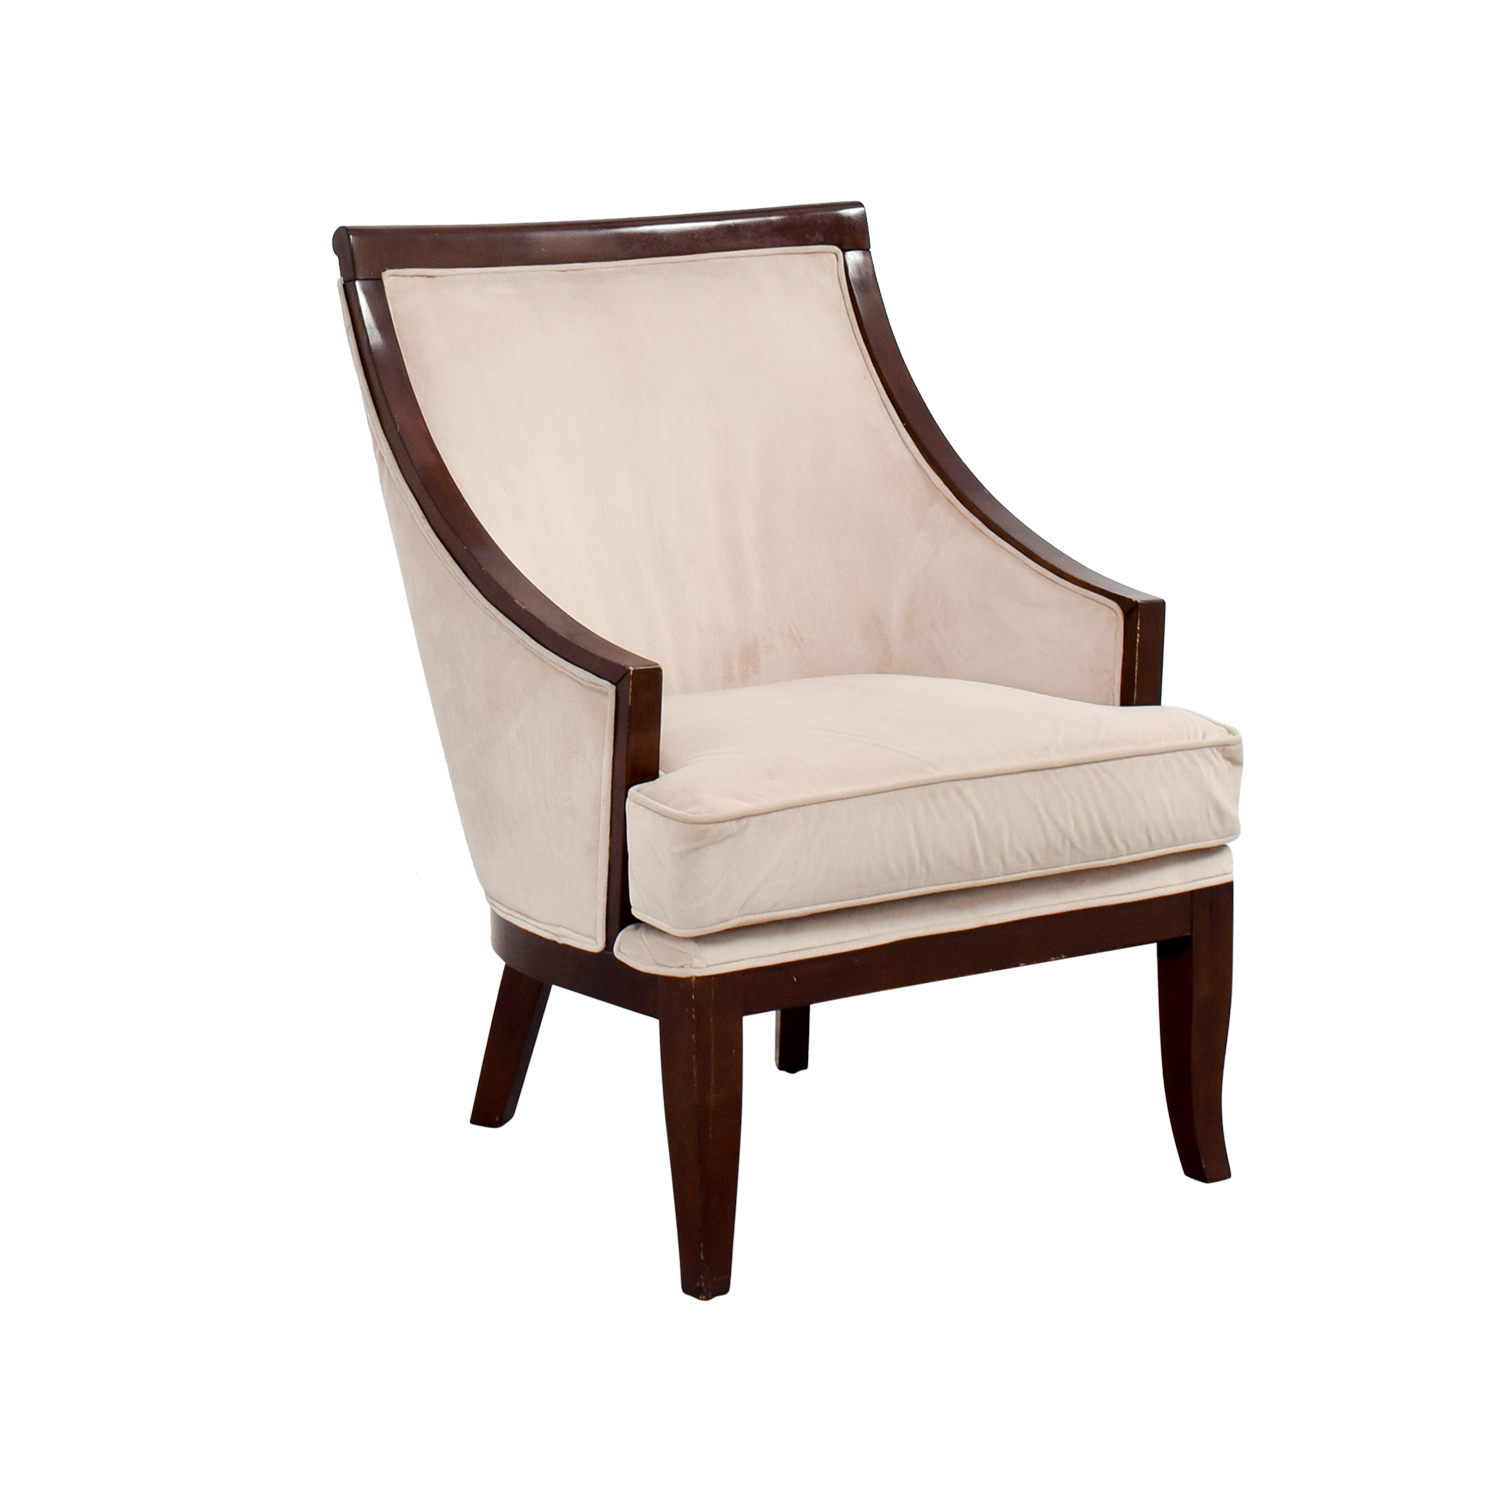 Armed Accent Chairs 90 Off Cream Armed Accent Chair Chairs